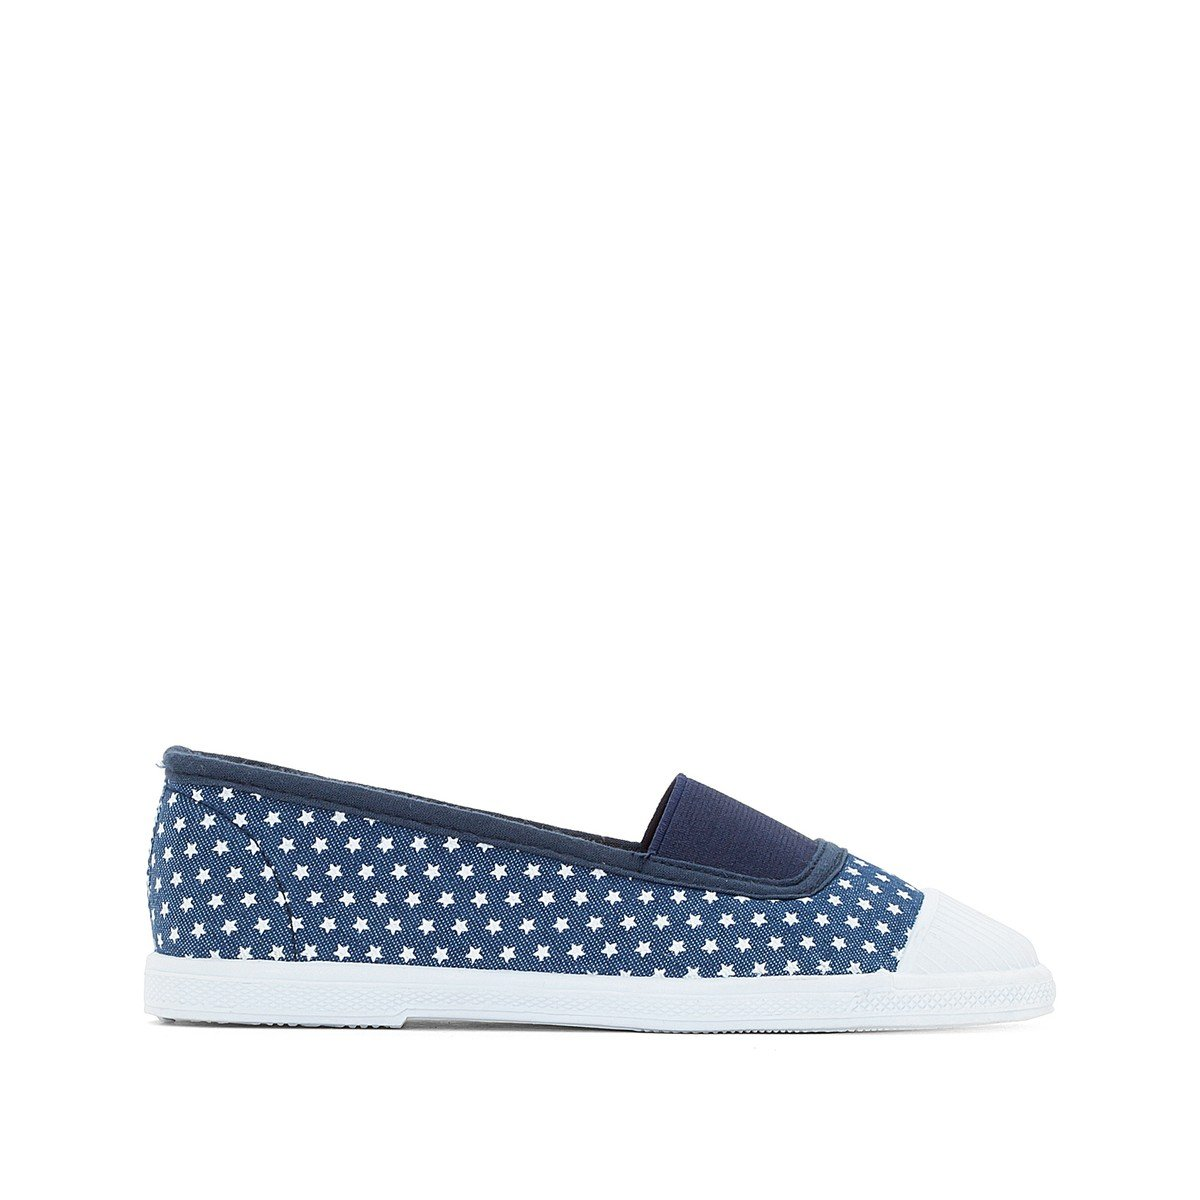 La Redoute Collections Big Girls Star Print Trainers Blue Size 35 (2.5 to 3)